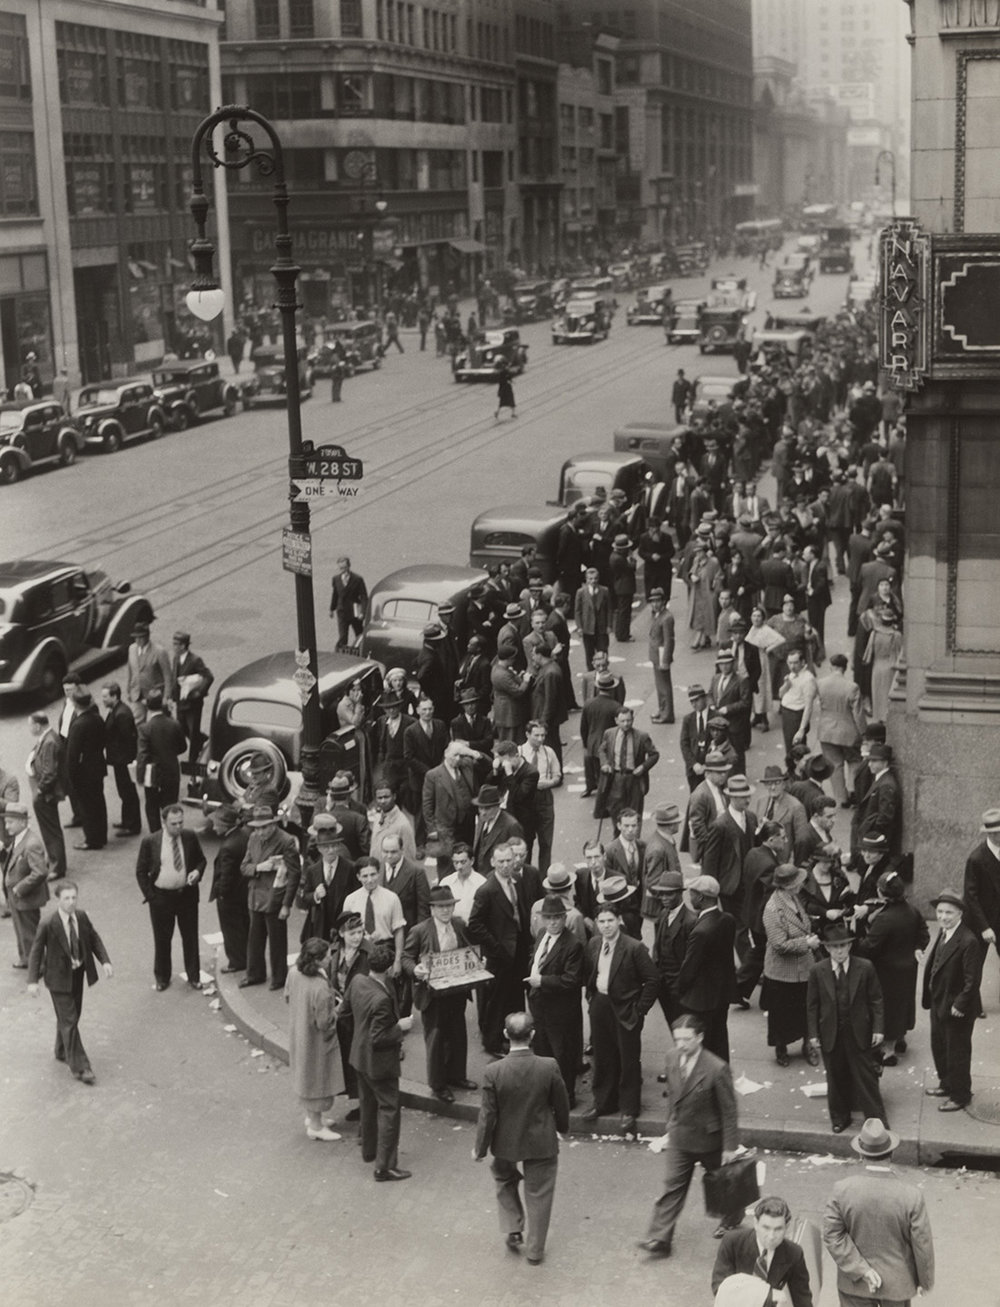 Garment Center at noon-time, 28th Street and Seventh Avenue, June 1936. Photograph by Dorothea Lange, WPA Federal Writers' Project collection, NYC Municipal Archives.